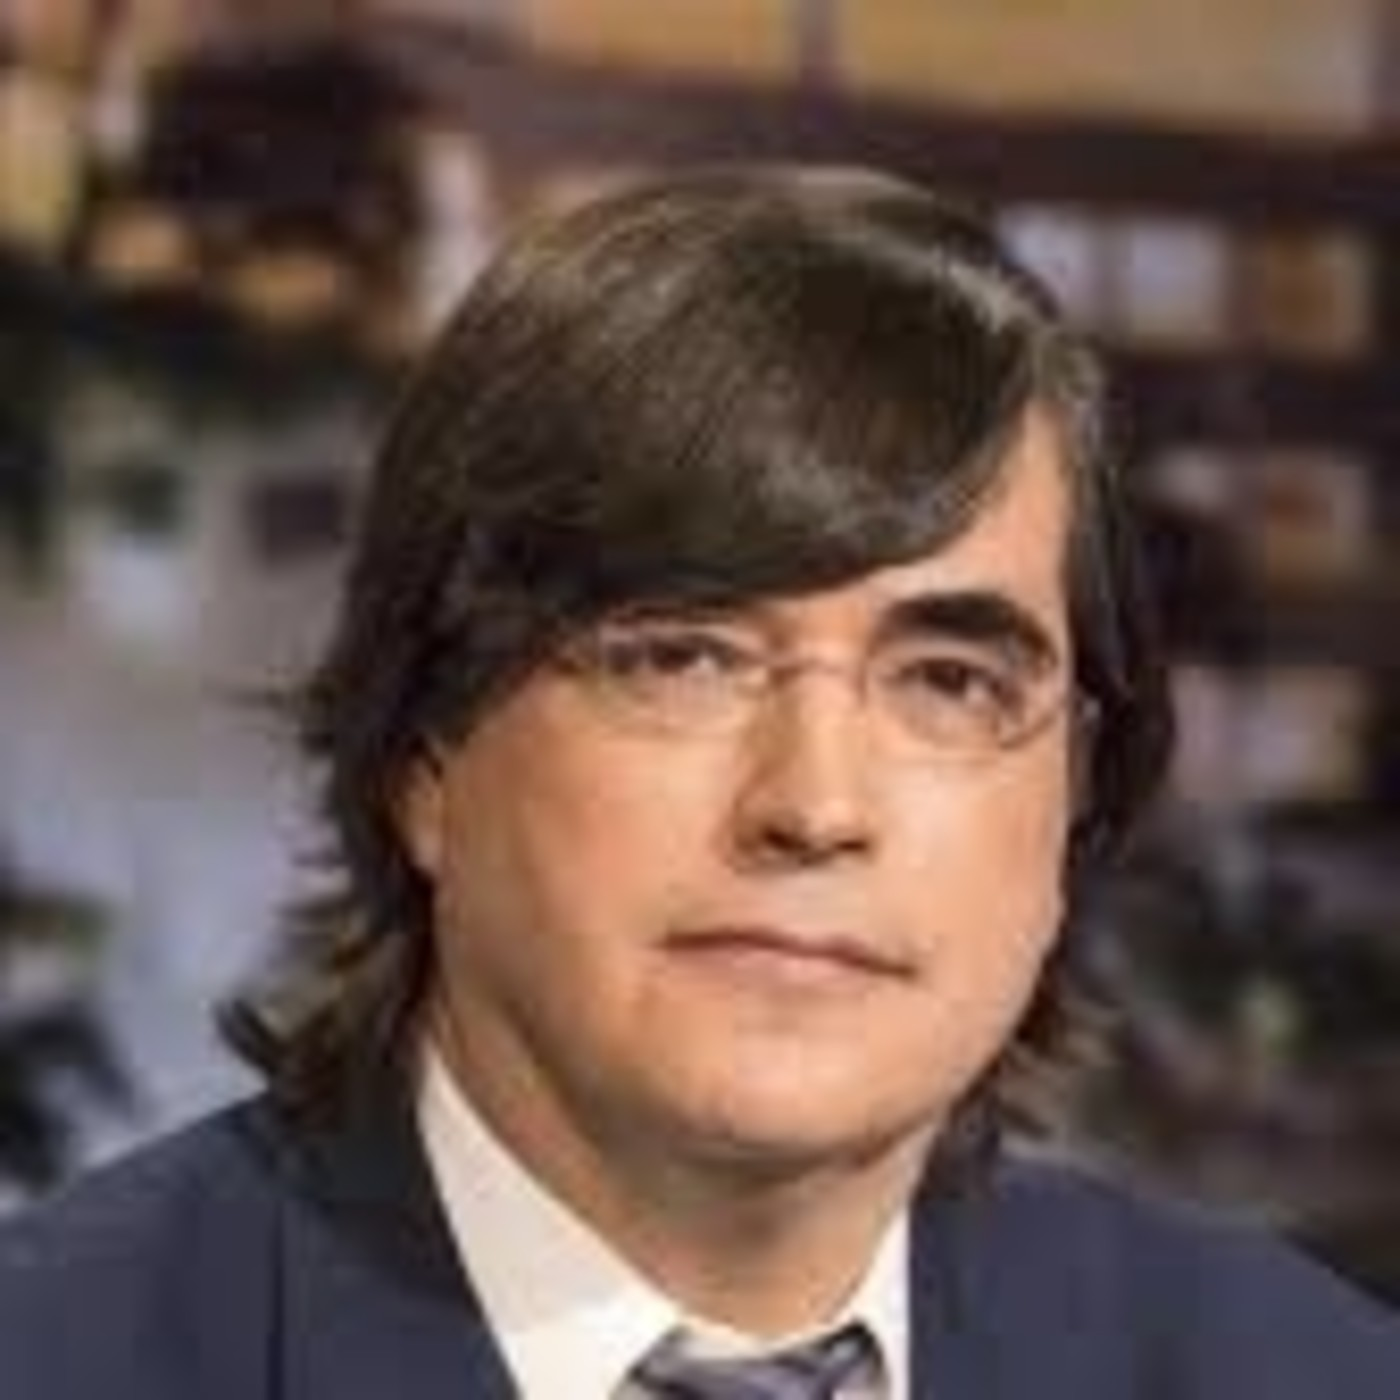 Jaime Bayly Entrevista A Camilo Sesto Infobae is a news website that was created in argentina in 2002 by businessman daniel hadad. jaime bayly entrevista a camilo sesto